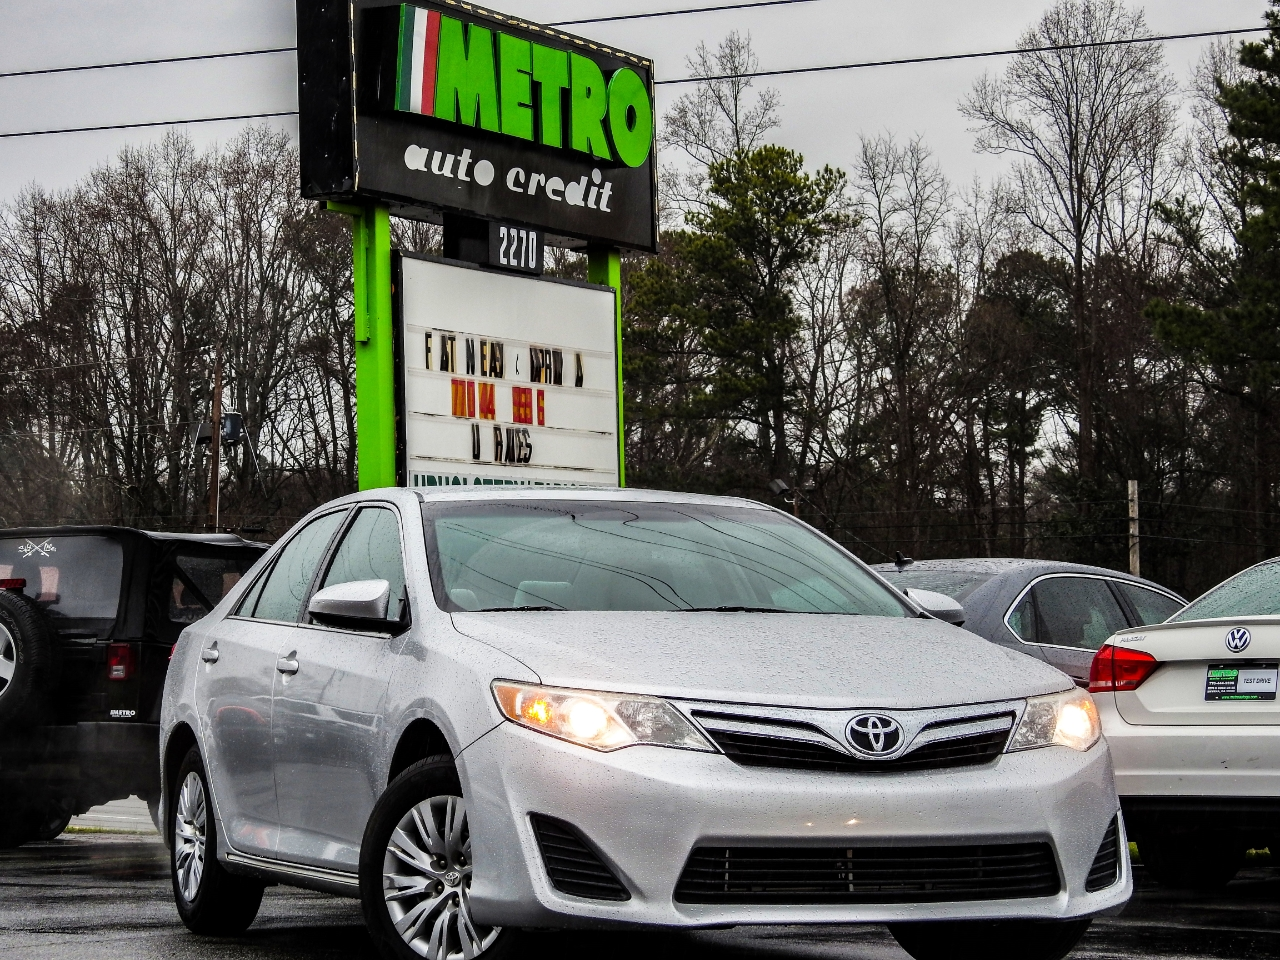 Toyota Camry 2014.5 4dr Sdn I4 Auto LE (Natl) 2014